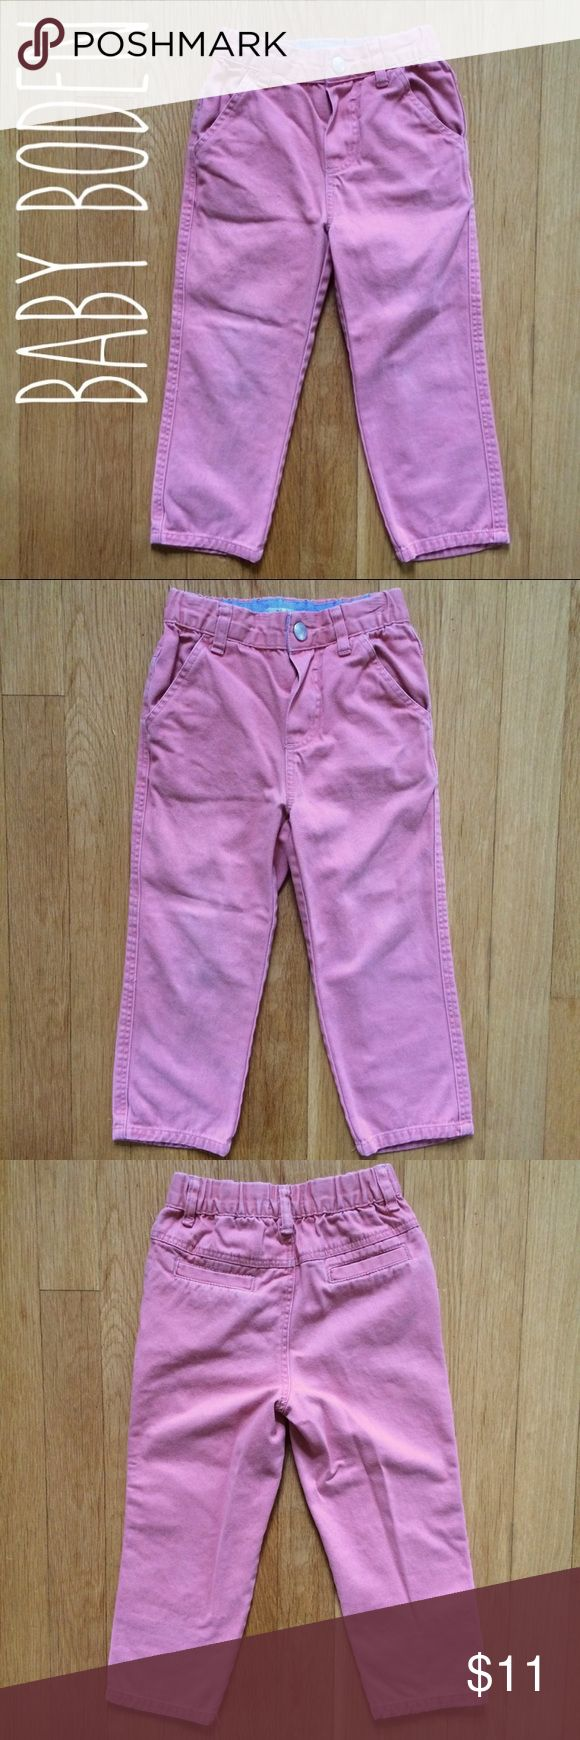 Mini Boden | Salmon Pants I'm the second owner of these. Initials on tag. Some wash wear and fading. Knees are worn a bit but not bad. 100% cotton. Dusty salmon color. NOT adjustable waist. Size is 2-3 years. Fit my tall/skinny son perfect around 2.5 years. Boden Bottoms Casual